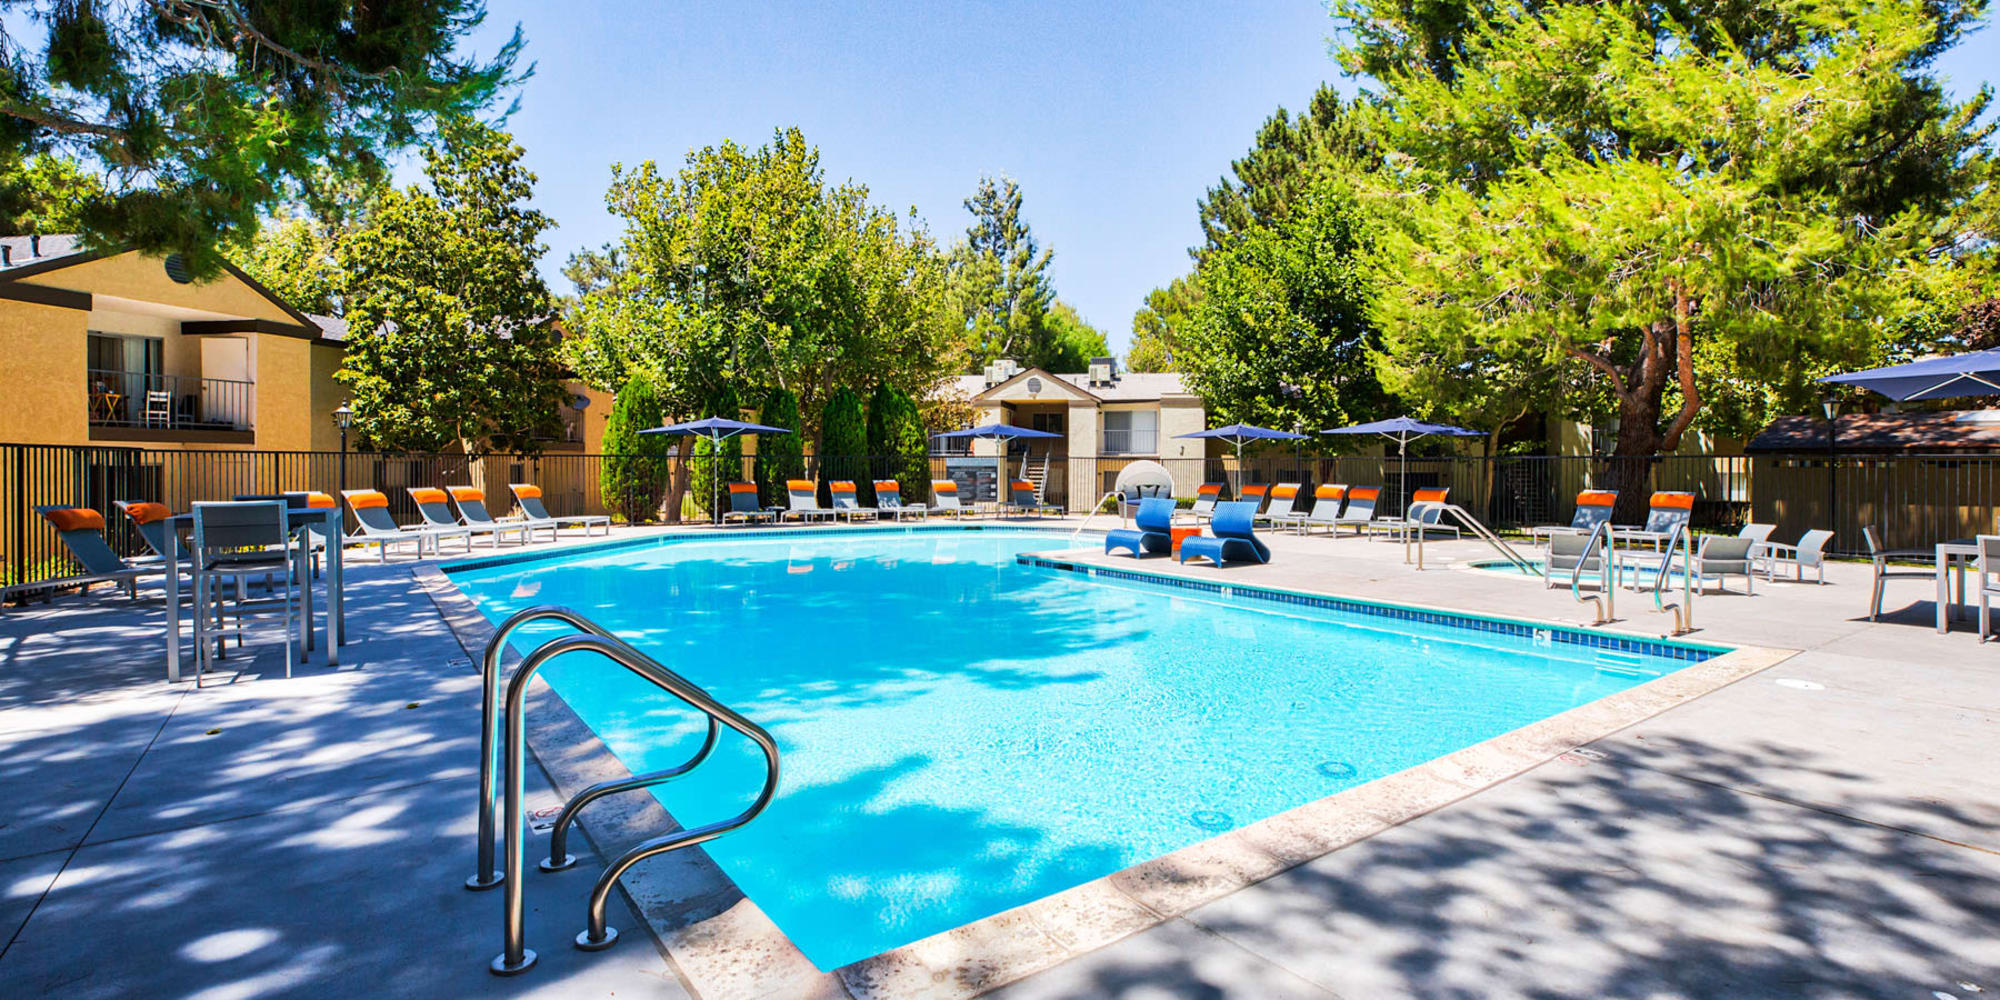 Resort-style swimming pool on a beautiful day at Mountain Vista in Victorville, California